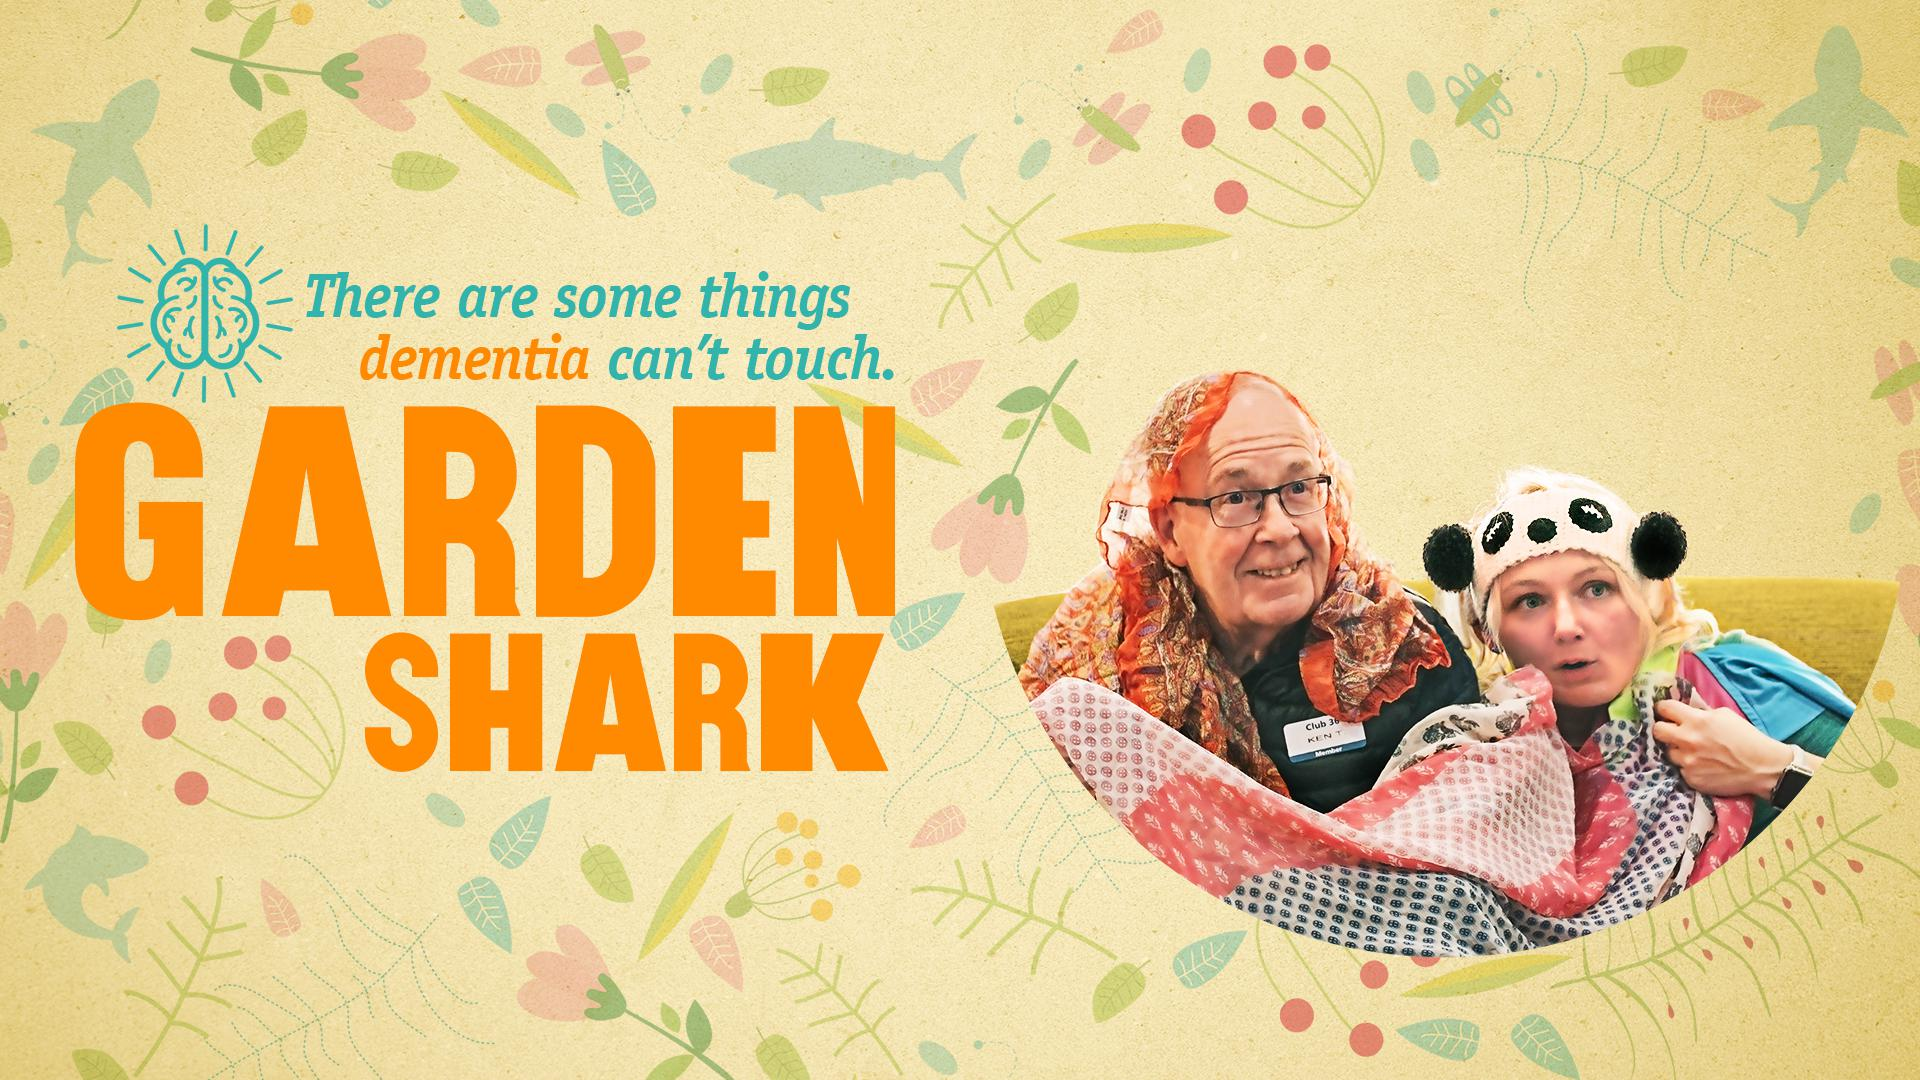 Garden Shark: there are some things dementia can't touch